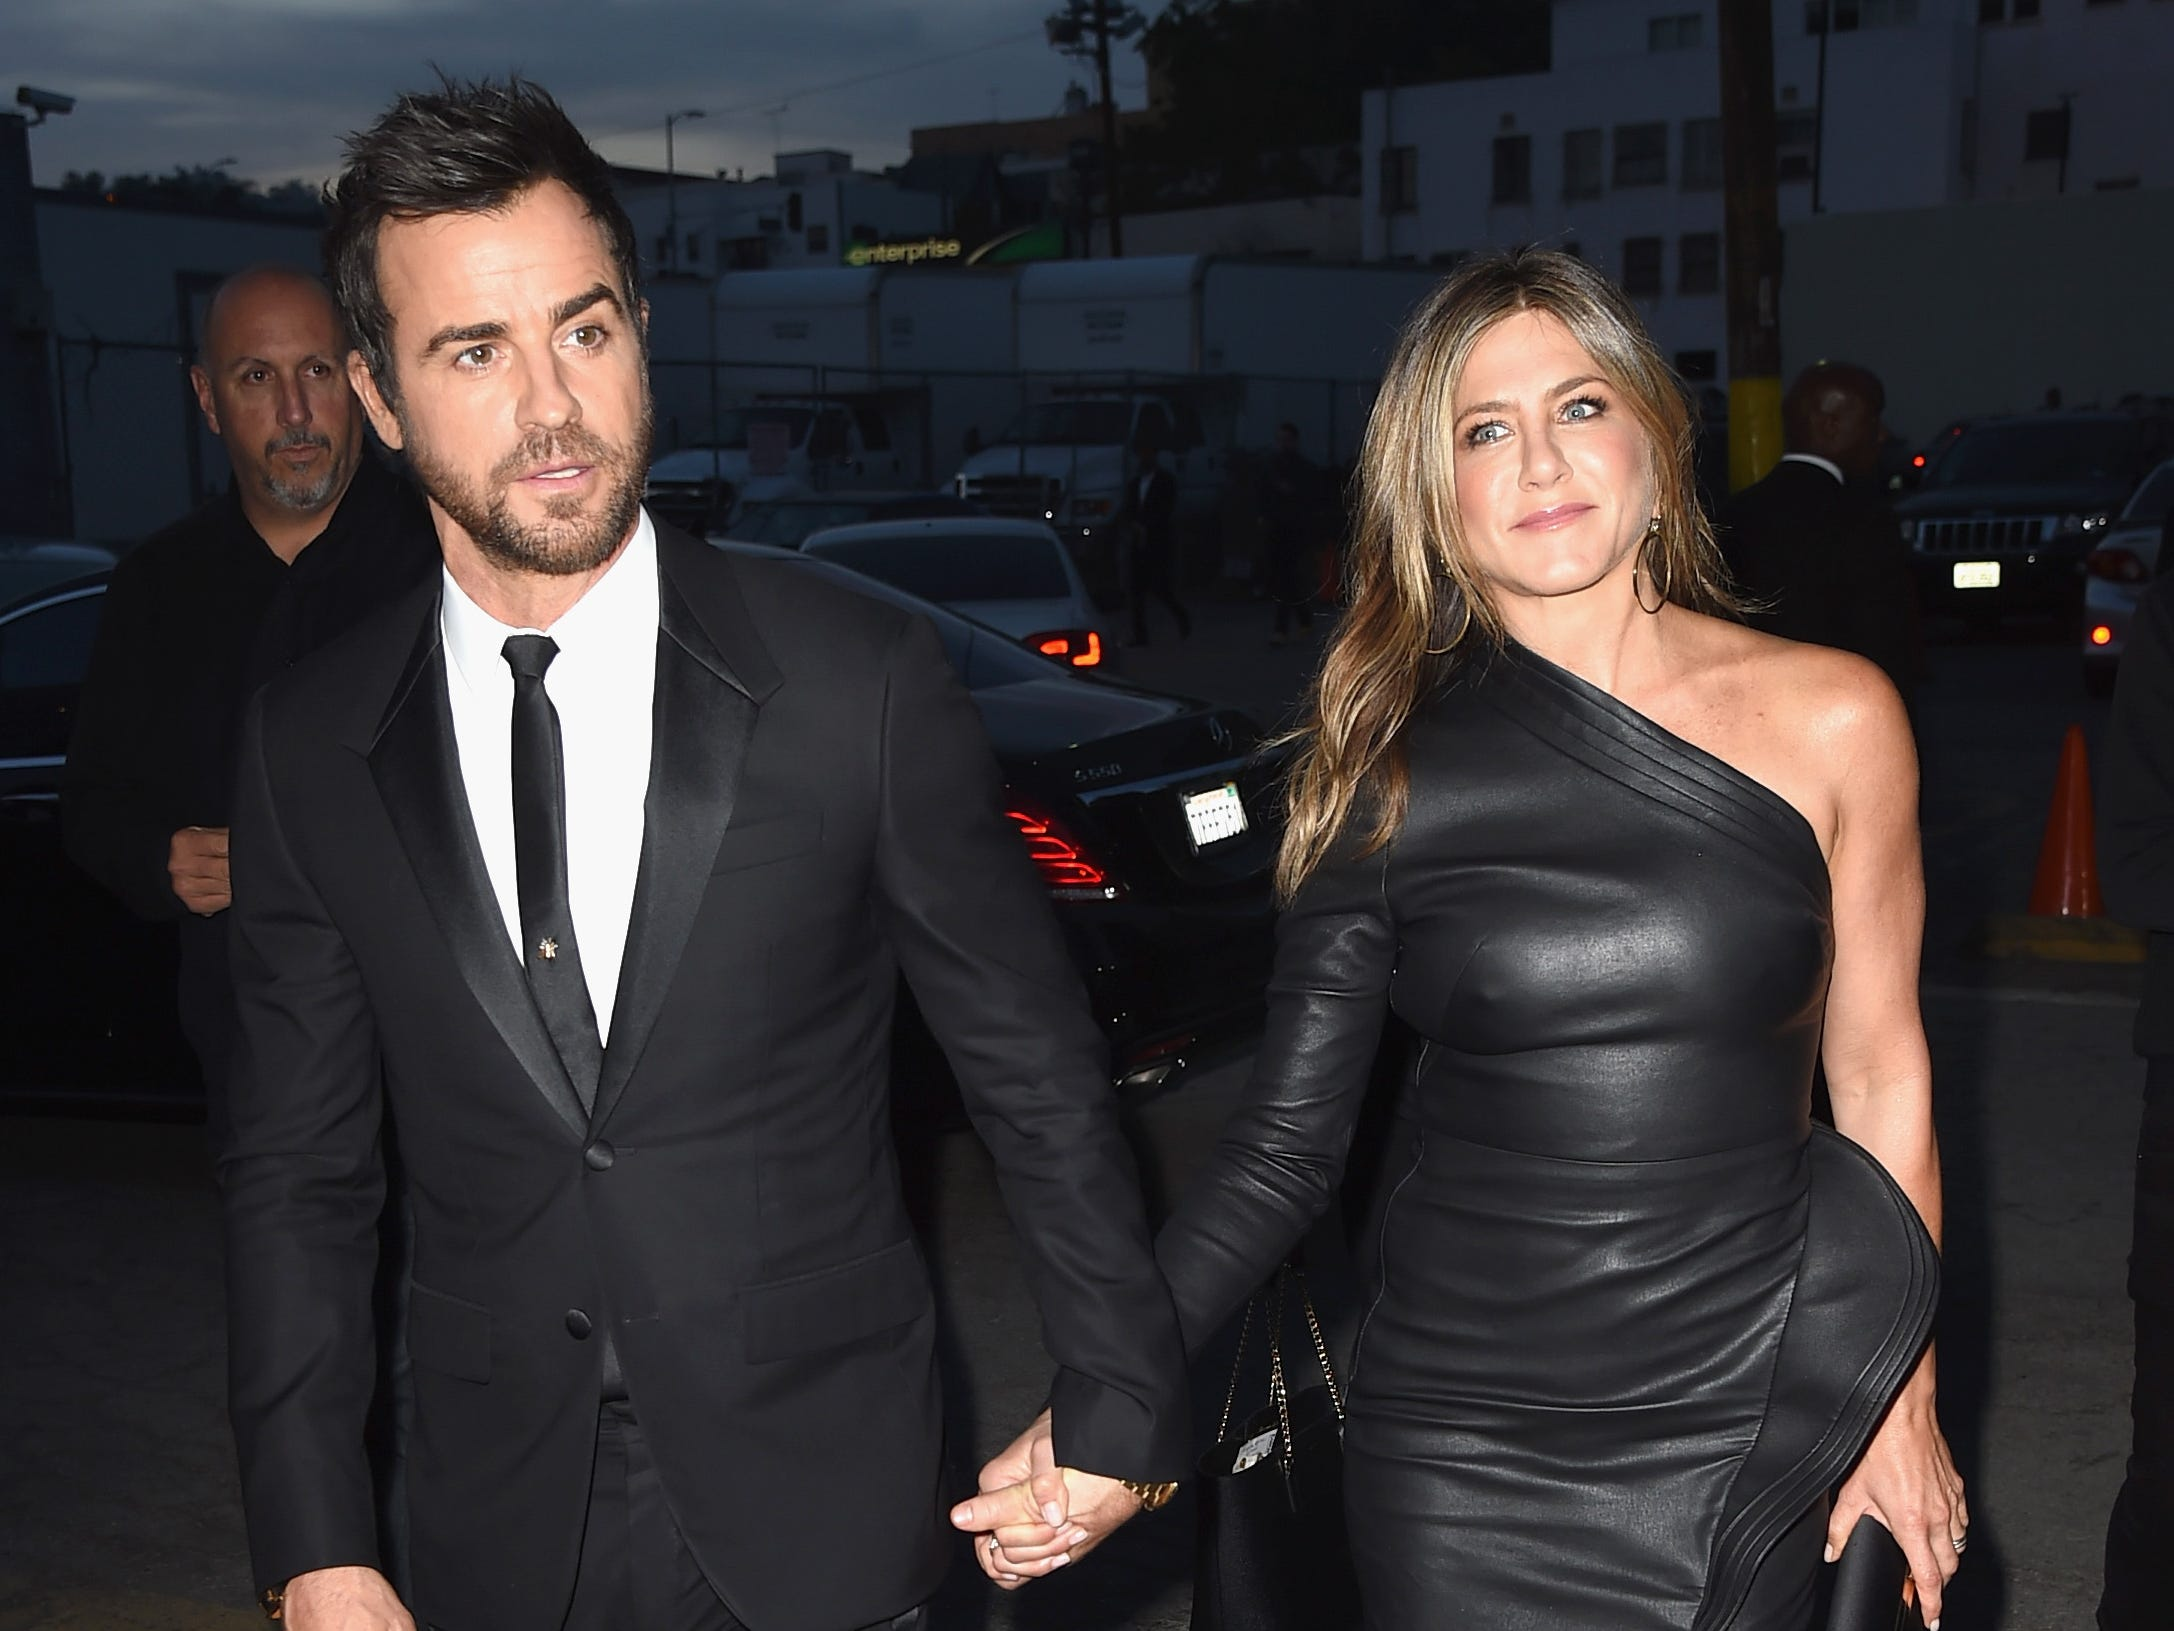 """Aniston, who often dressed edgier during her relationship with Theroux, sported an asymmetrical leather minidress at the final-season premiere of his HBO drama """"The Leftovers"""" in April 2017."""